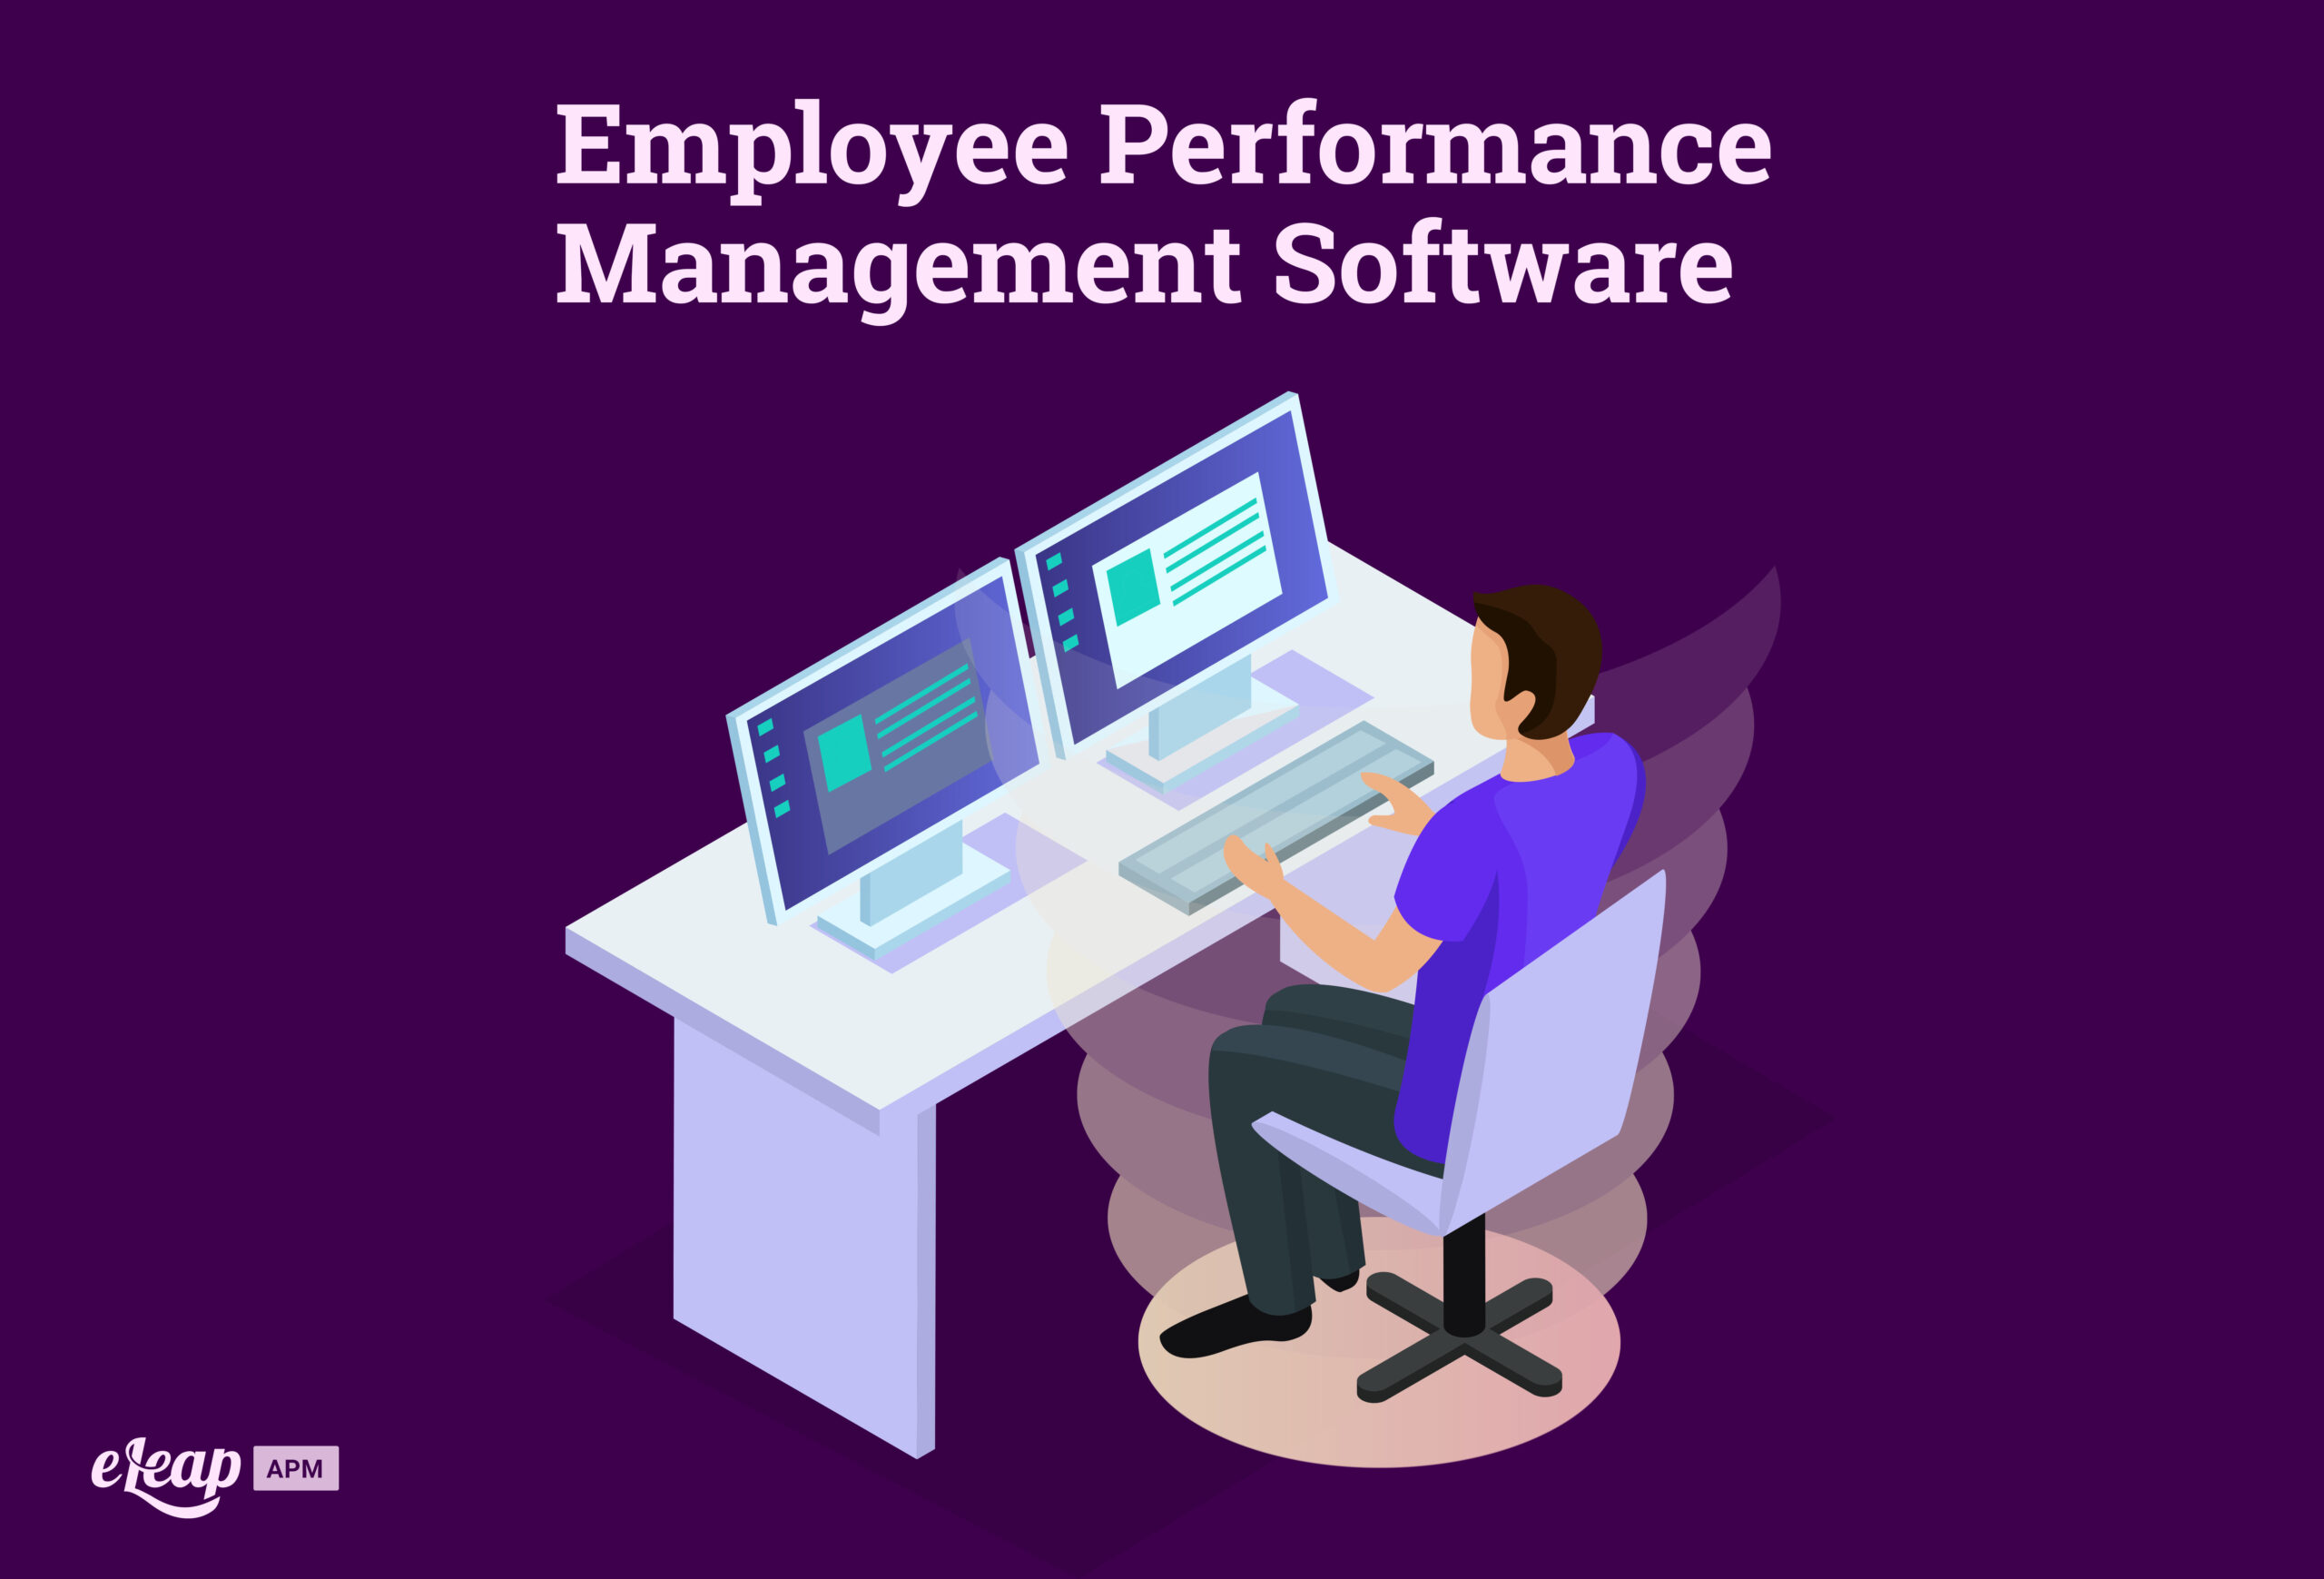 Employee Performance Management Software